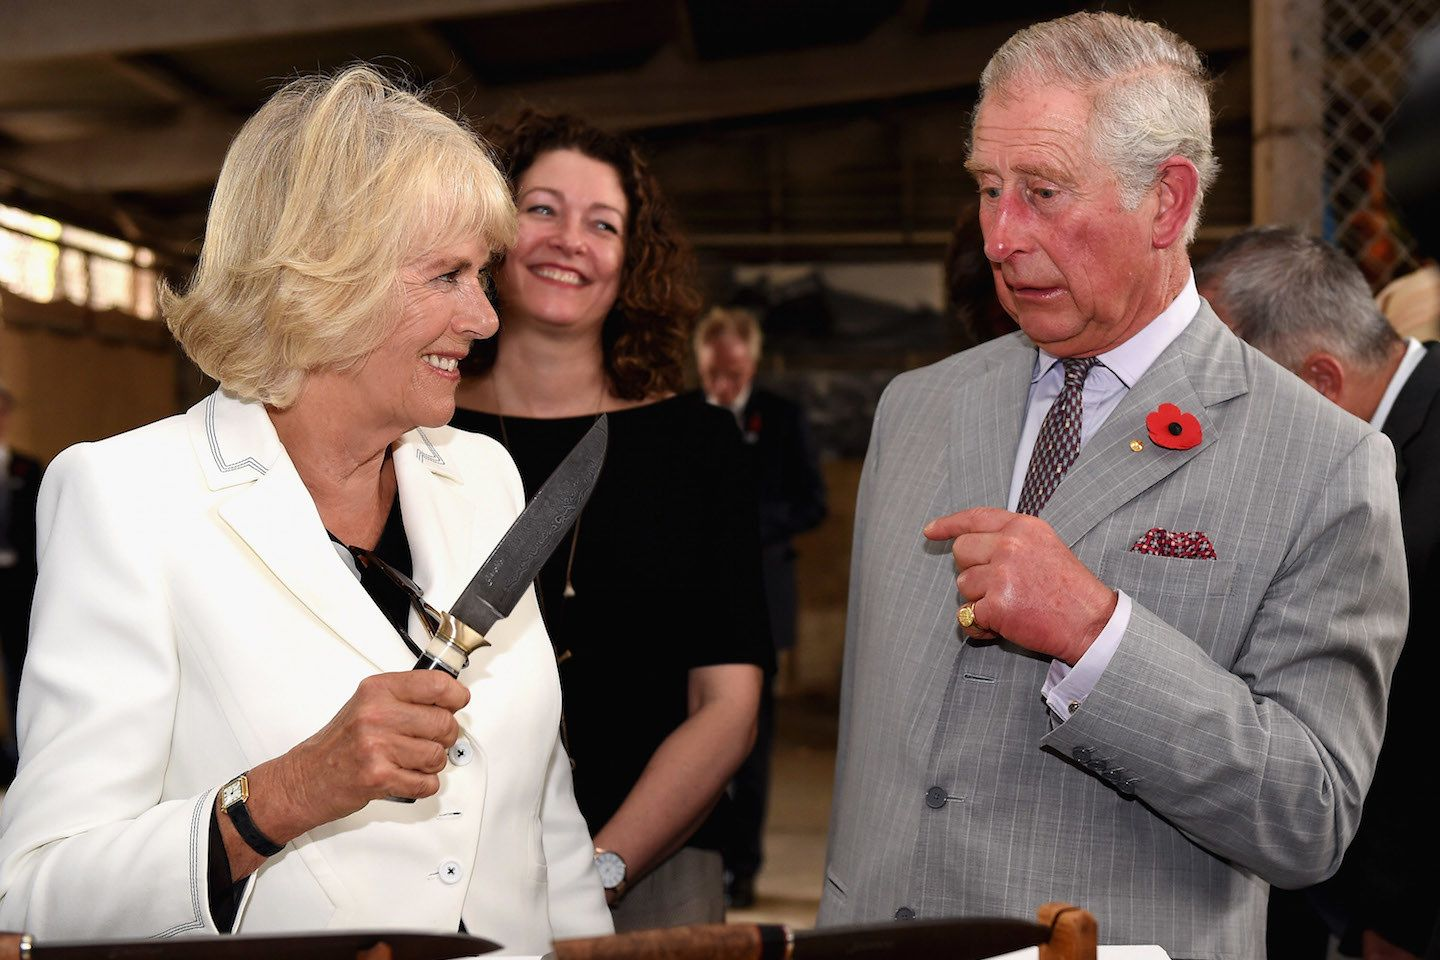 Behave yourself, Prince Charles.